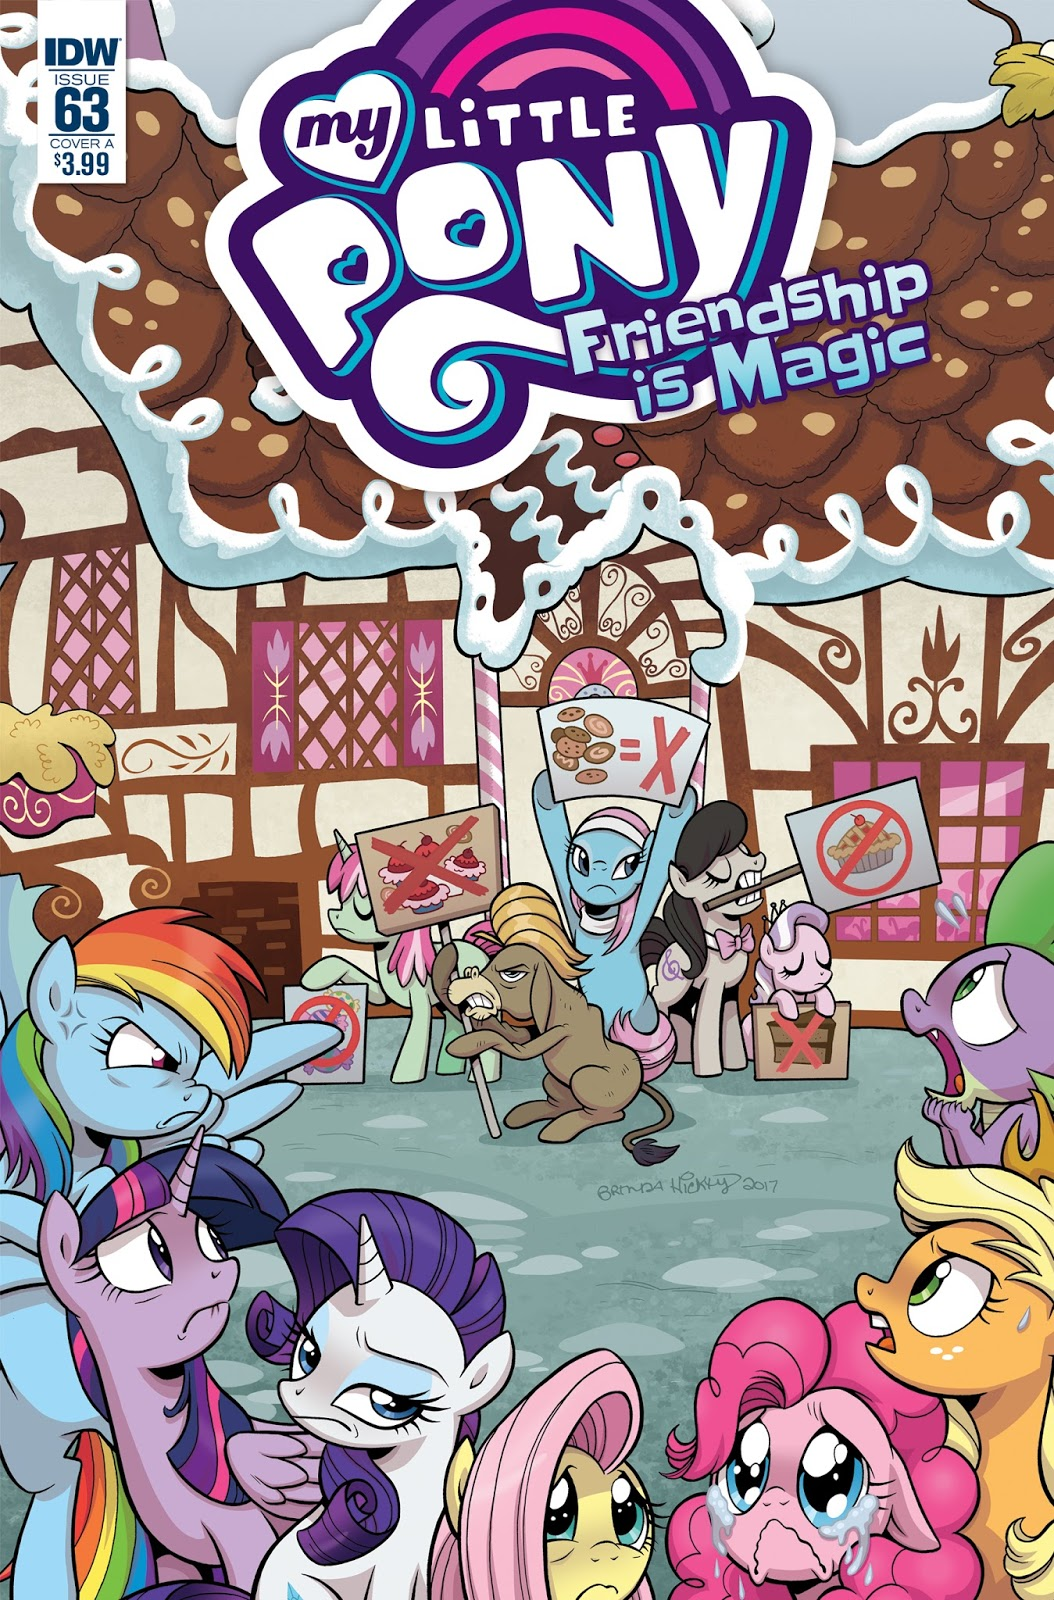 Anon Mlp Comic general comic chat - 75 issues of fim and counting - the